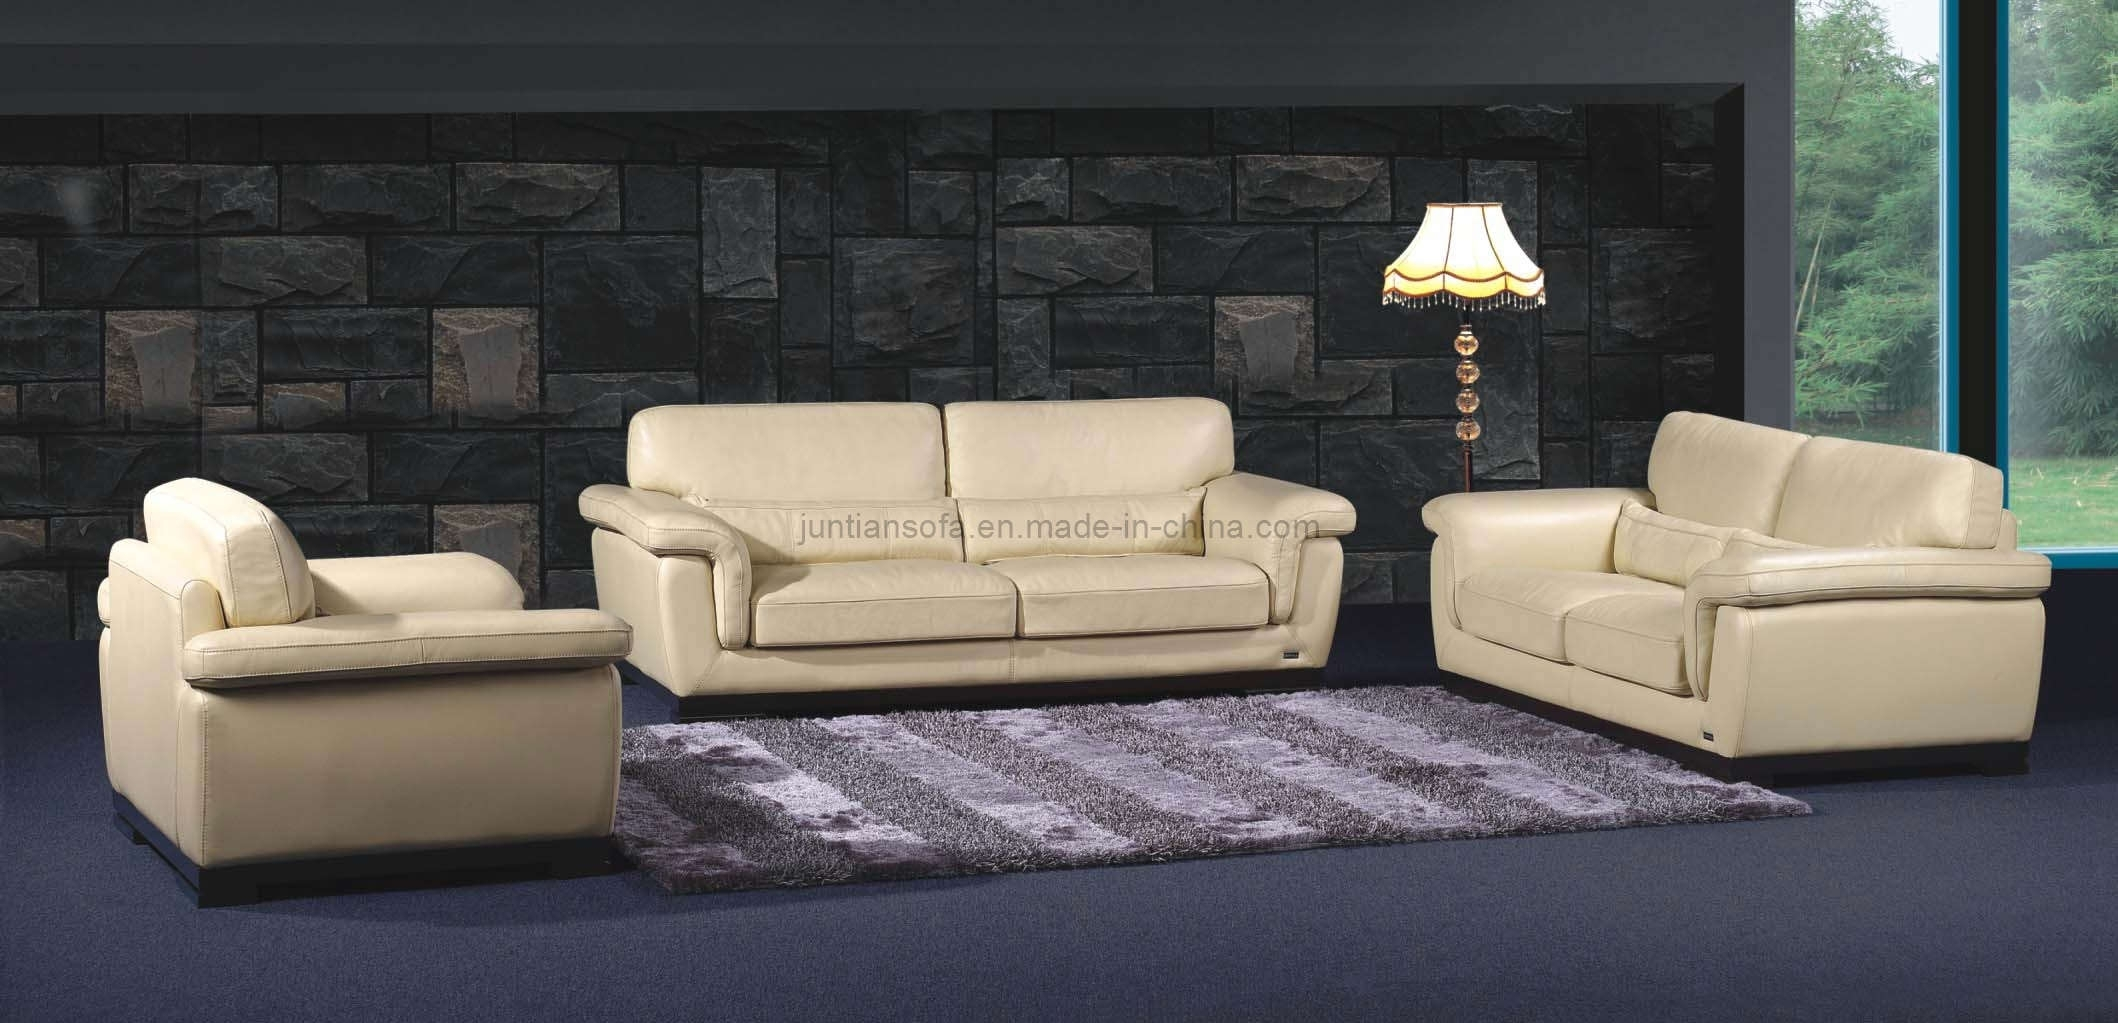 Lovely High Quality Sectional Sofa 30 For Sofa Room Ideas With High With Regard To High Quality Sectional Sofas (View 2 of 10)